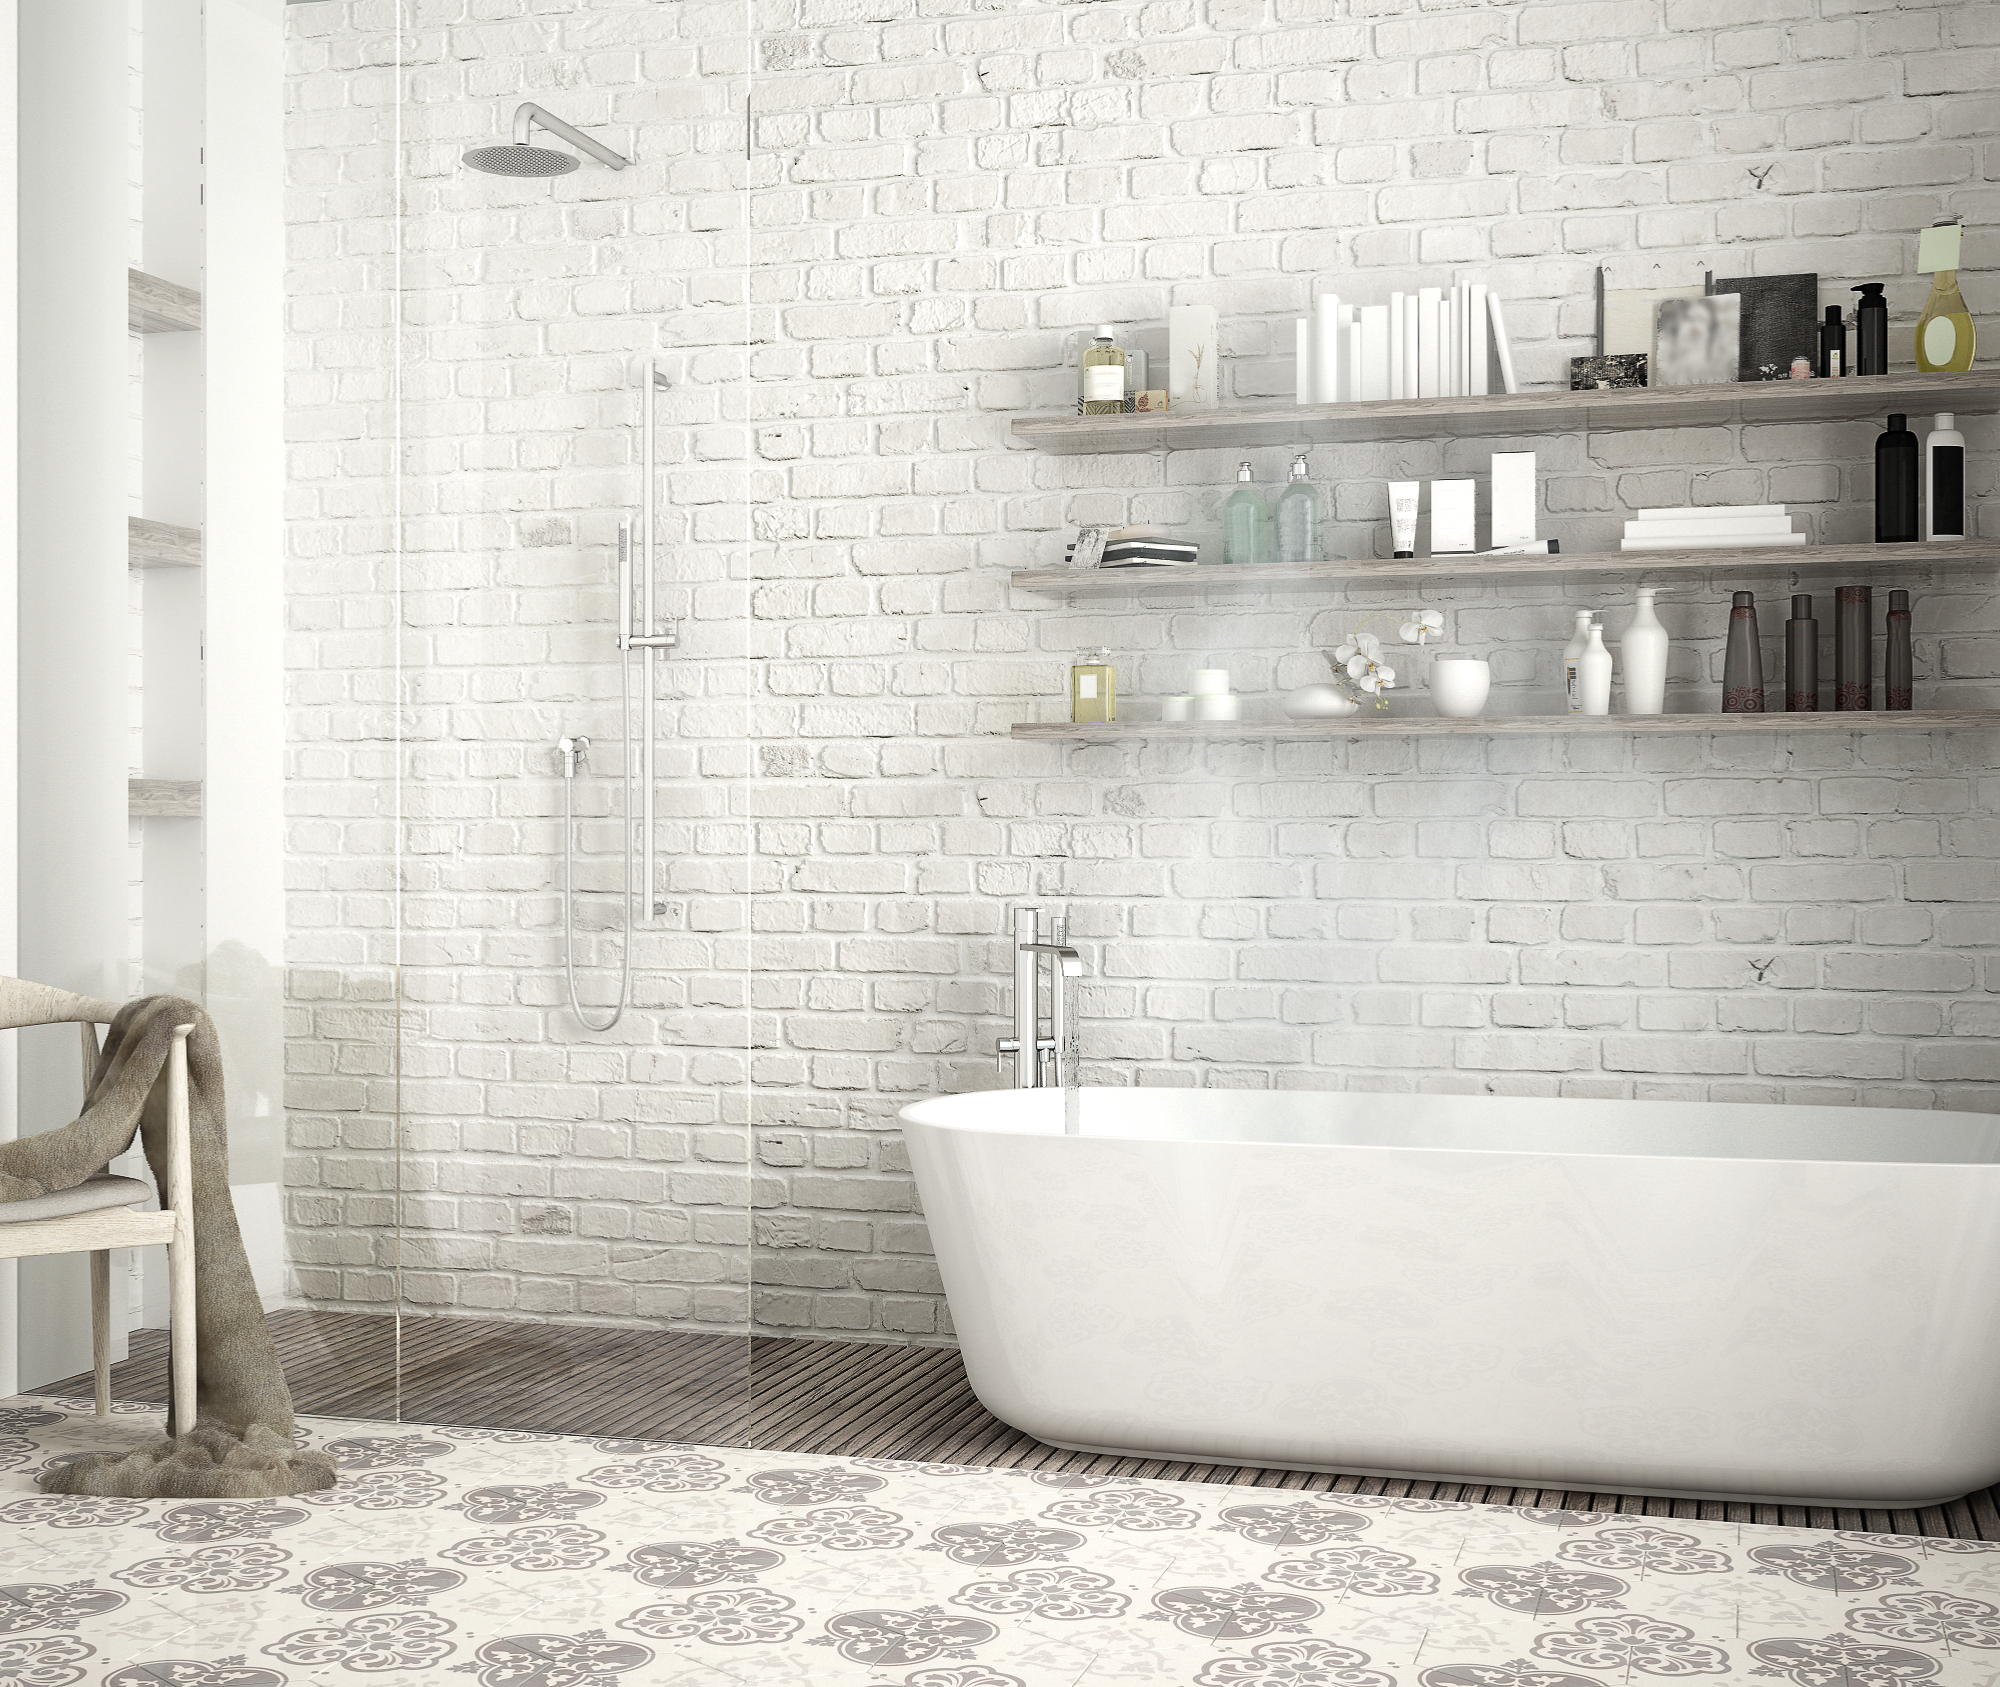 So you're trying to up the way your bathroom looks? Do you have an existing brick wall? Whitewash the brick for this fun, edgy look. For more vintage bathroom tile ideas (and brick), look here!